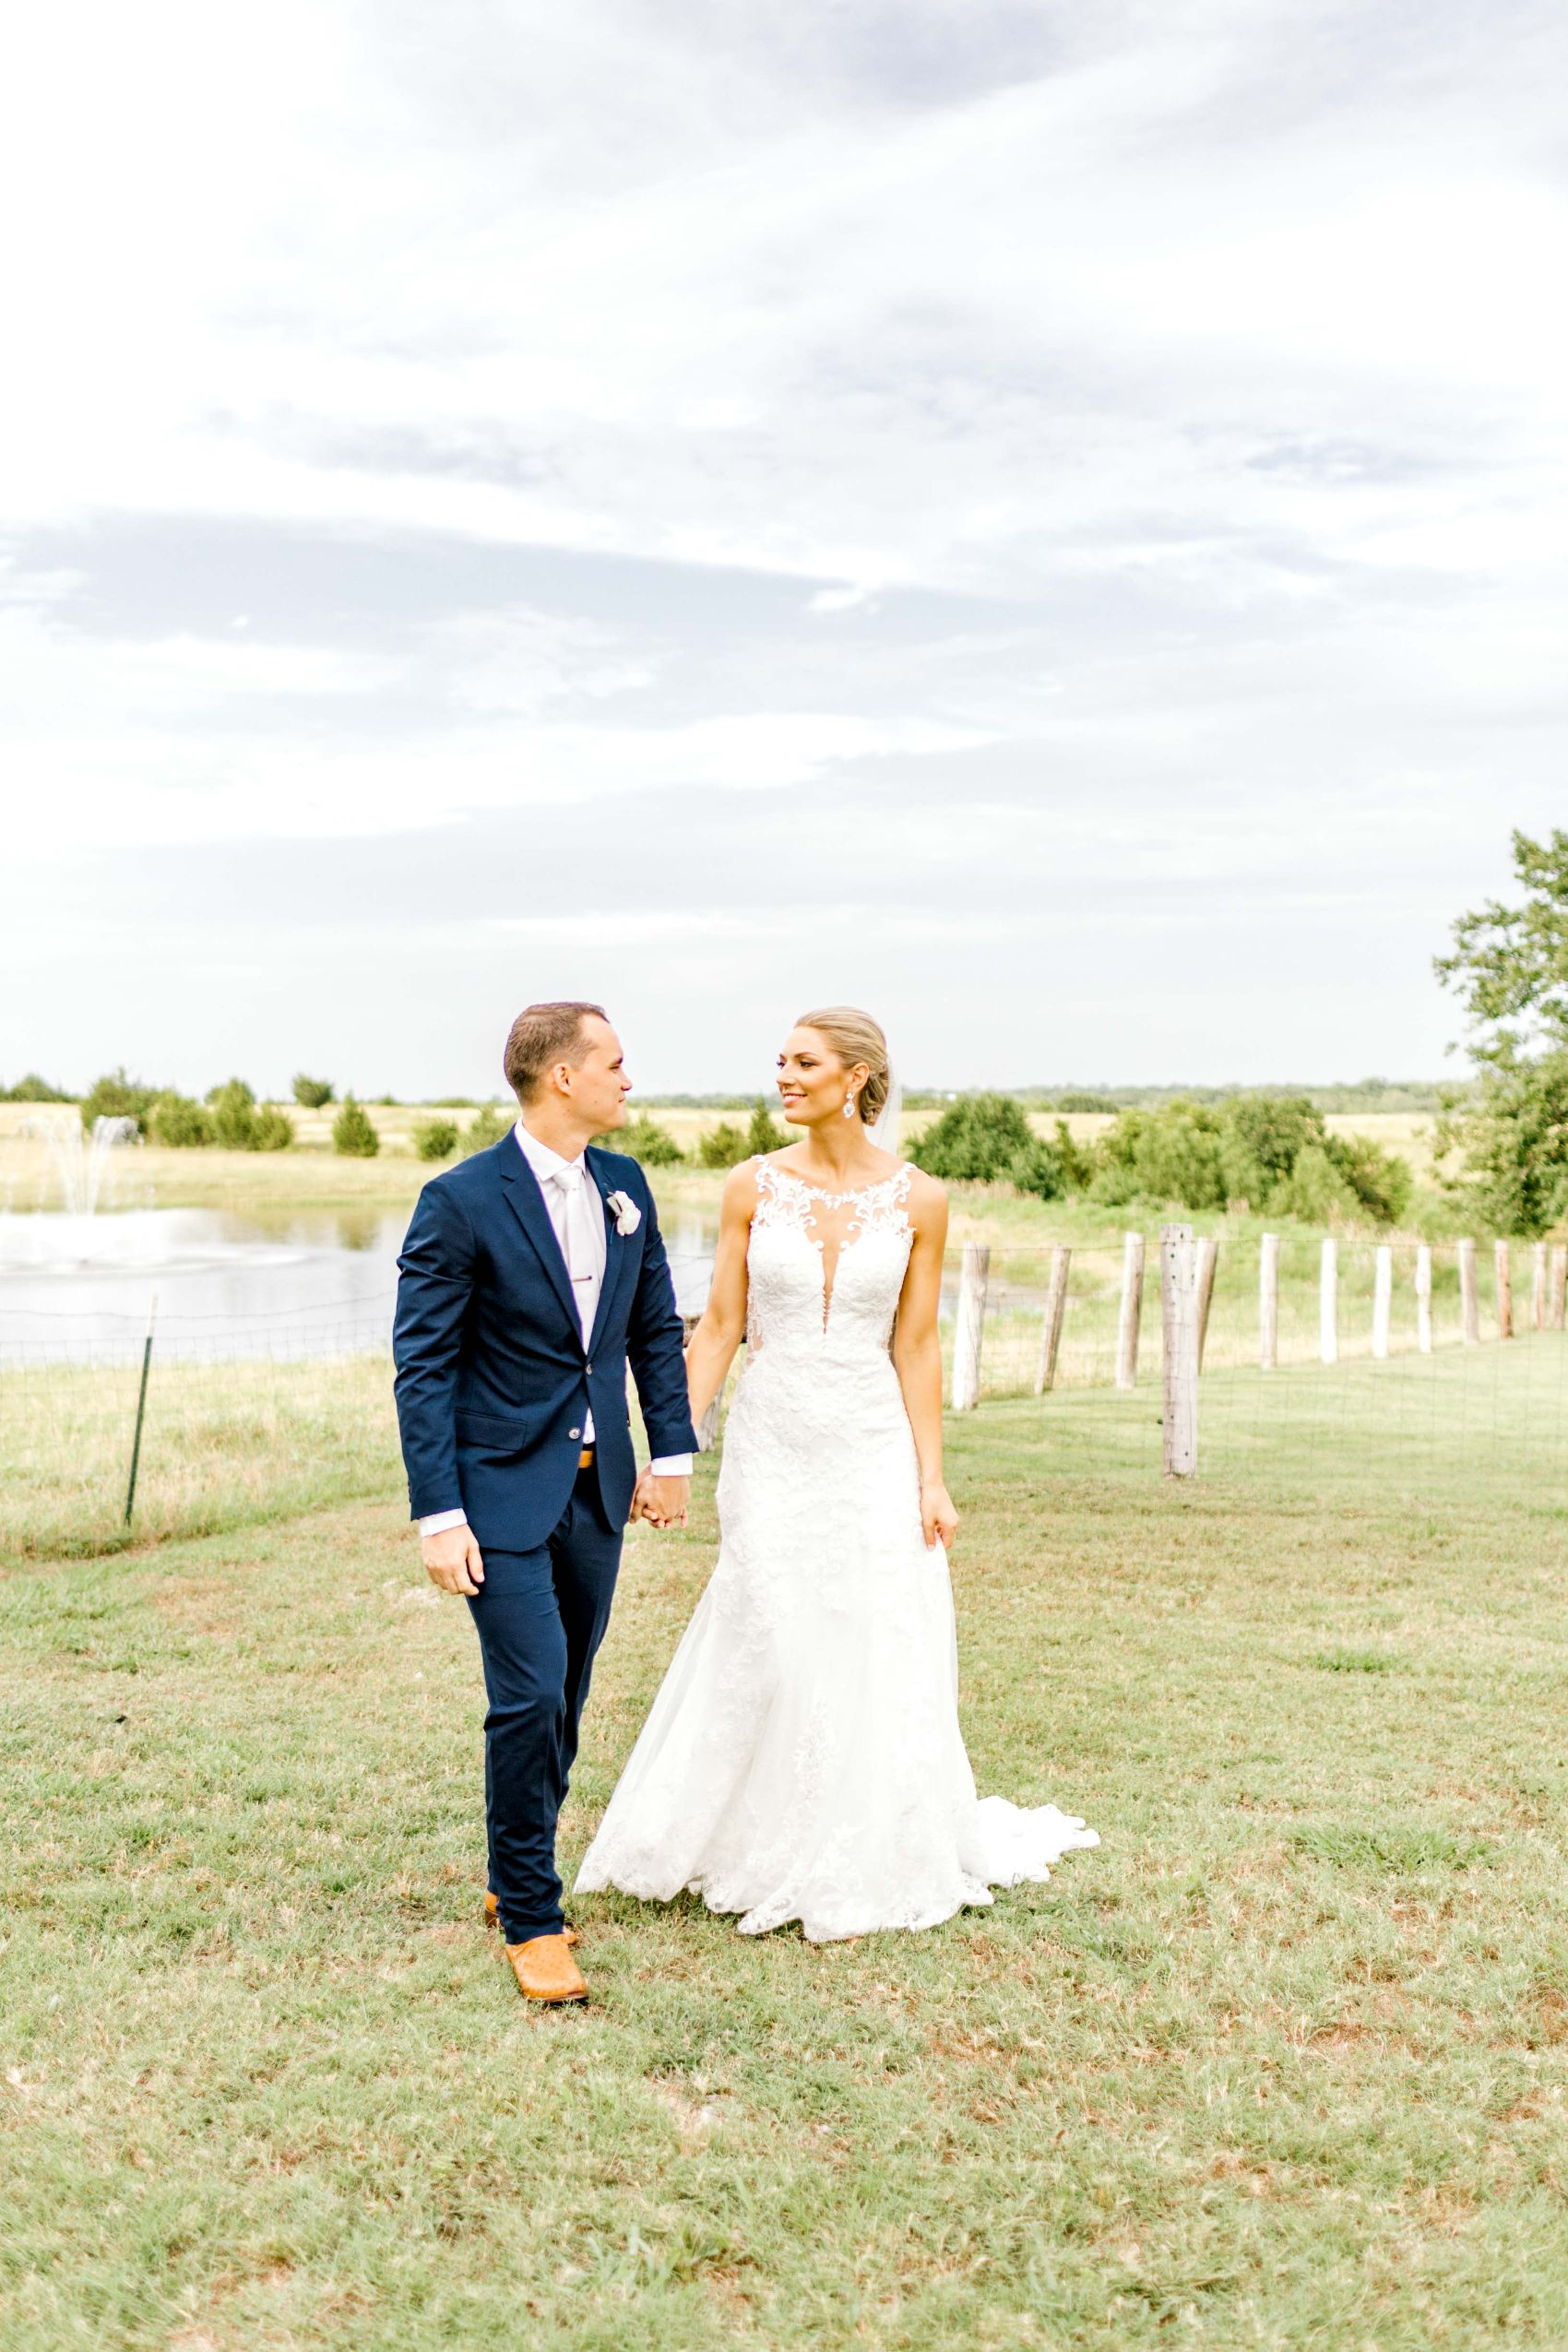 rustic-grace-estate-van-alstyne-wedding-06.22.19-39.jpg